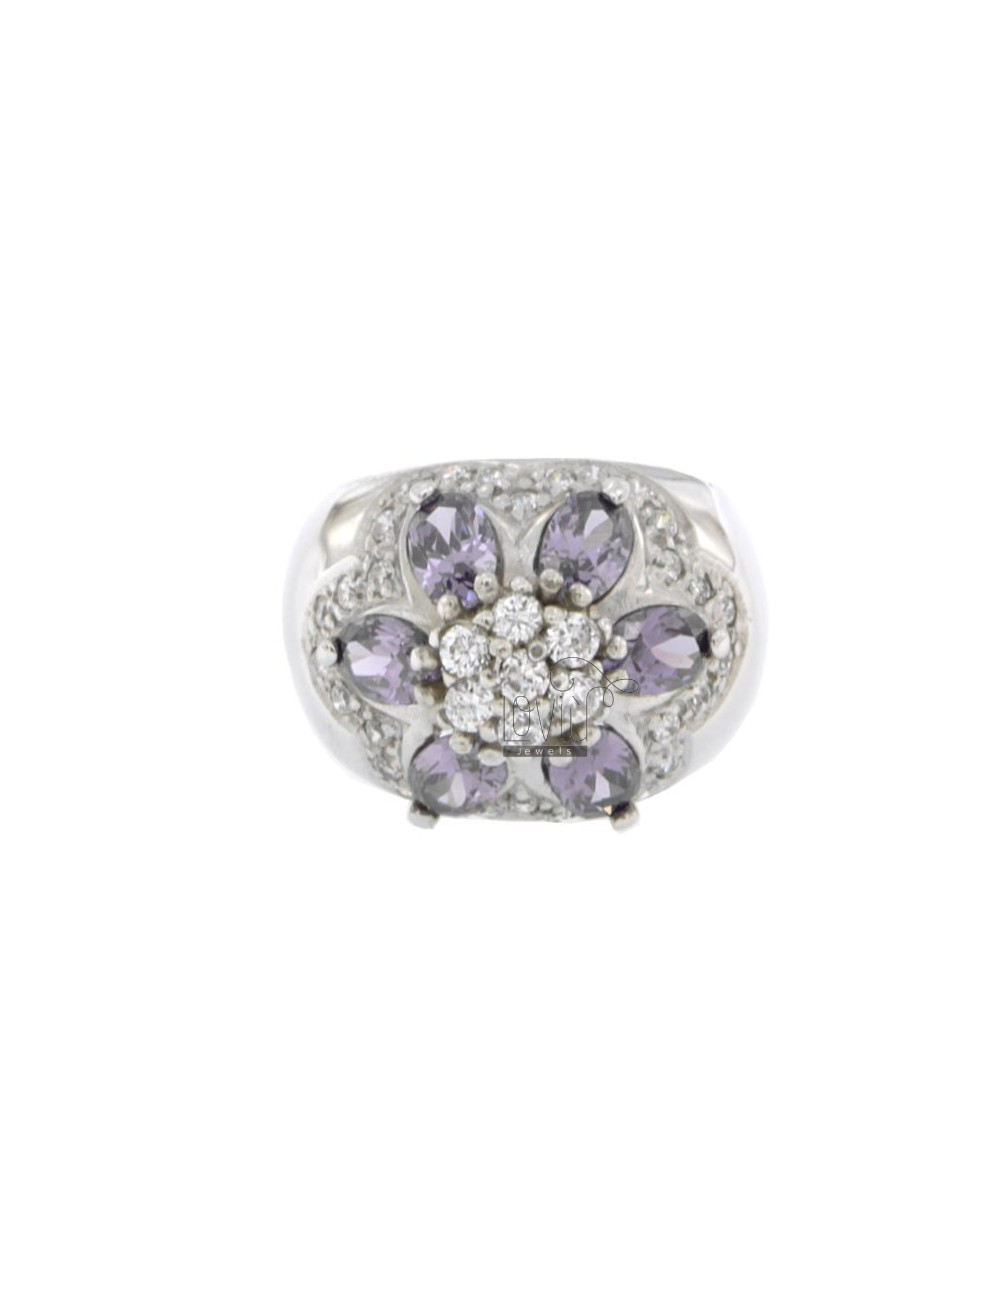 FASCIONE ZIRCONIA RING WITH FLOWER IN PURPLE AND WHITE RHODIUM AG TIT 925 SIZE 14